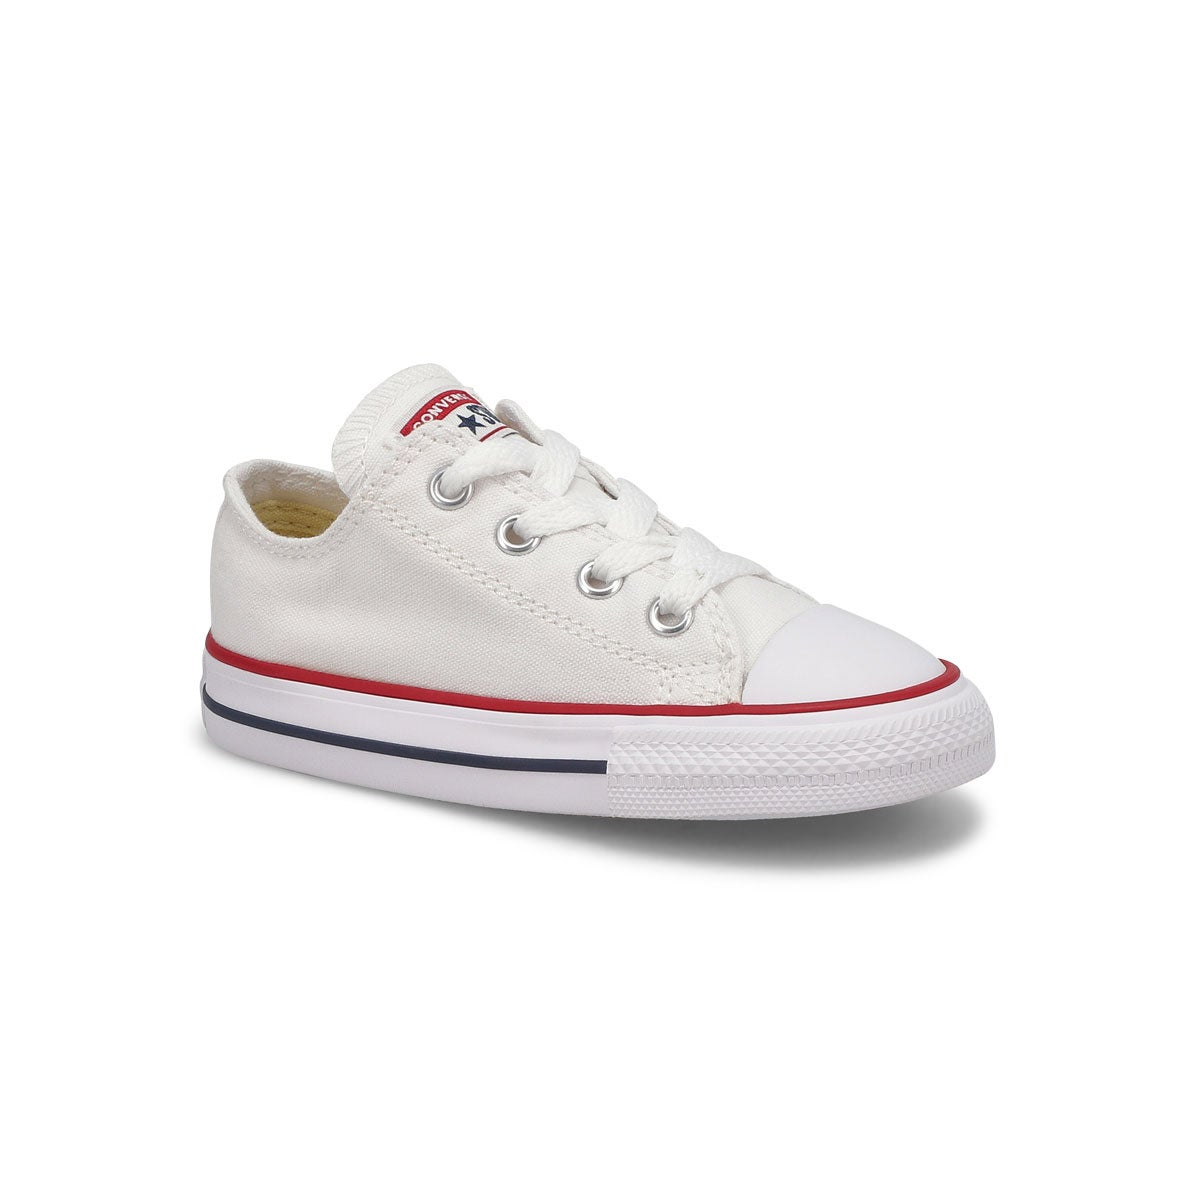 Infants' CHUCK TAYLOR ALL STAR white sneakers